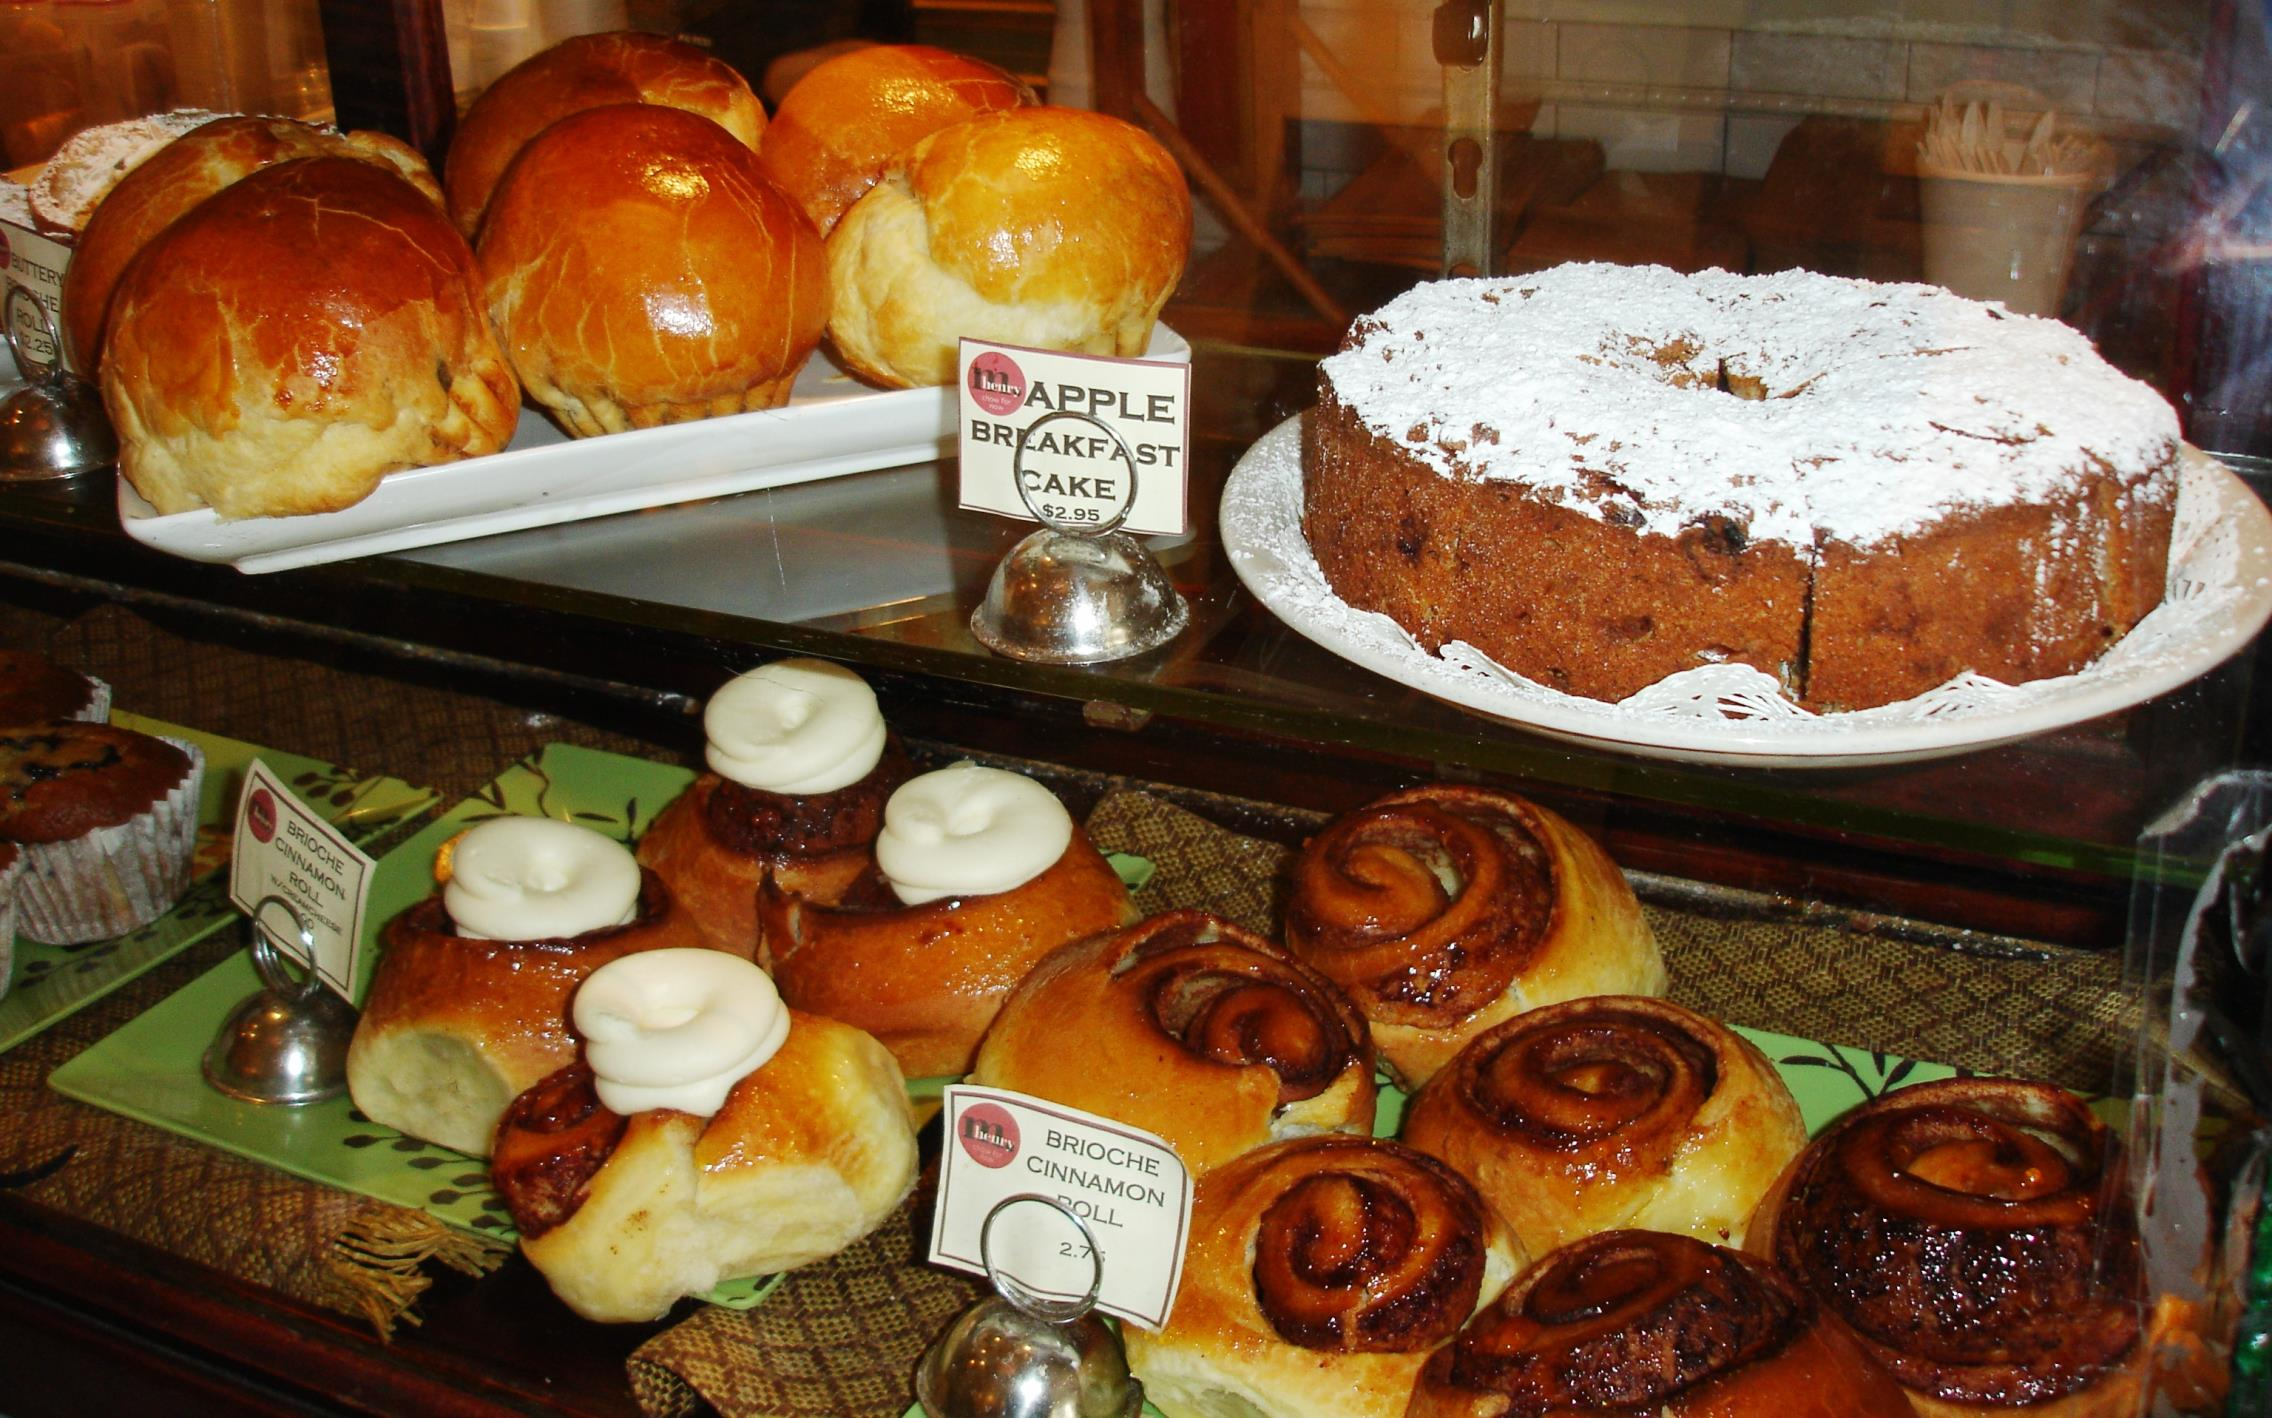 You pass through the bakery on the way to the restaurant, which makes your breakfast decision that much harder.